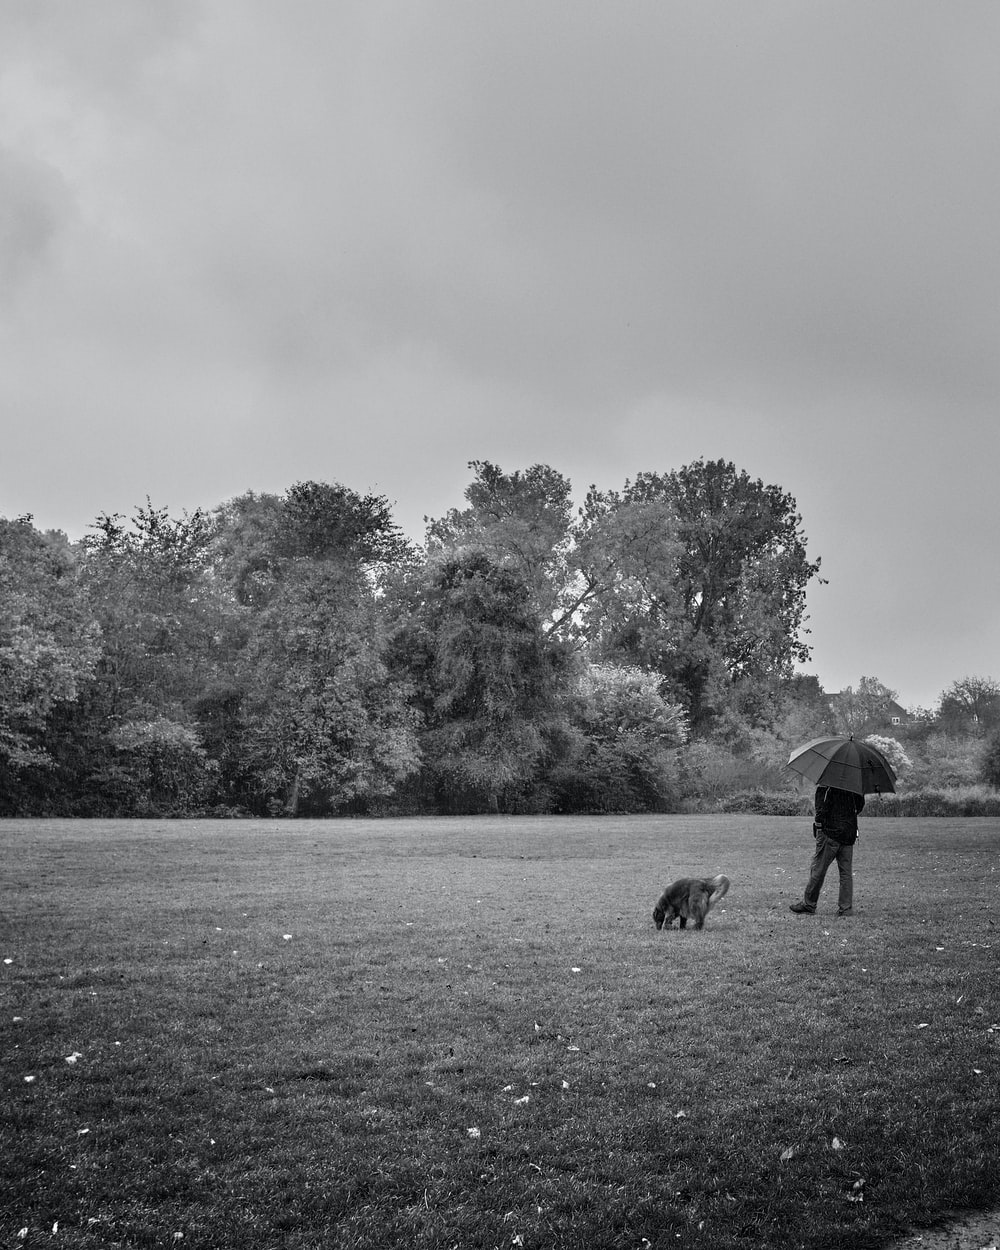 grayscale photo of 2 dogs on grass field near trees